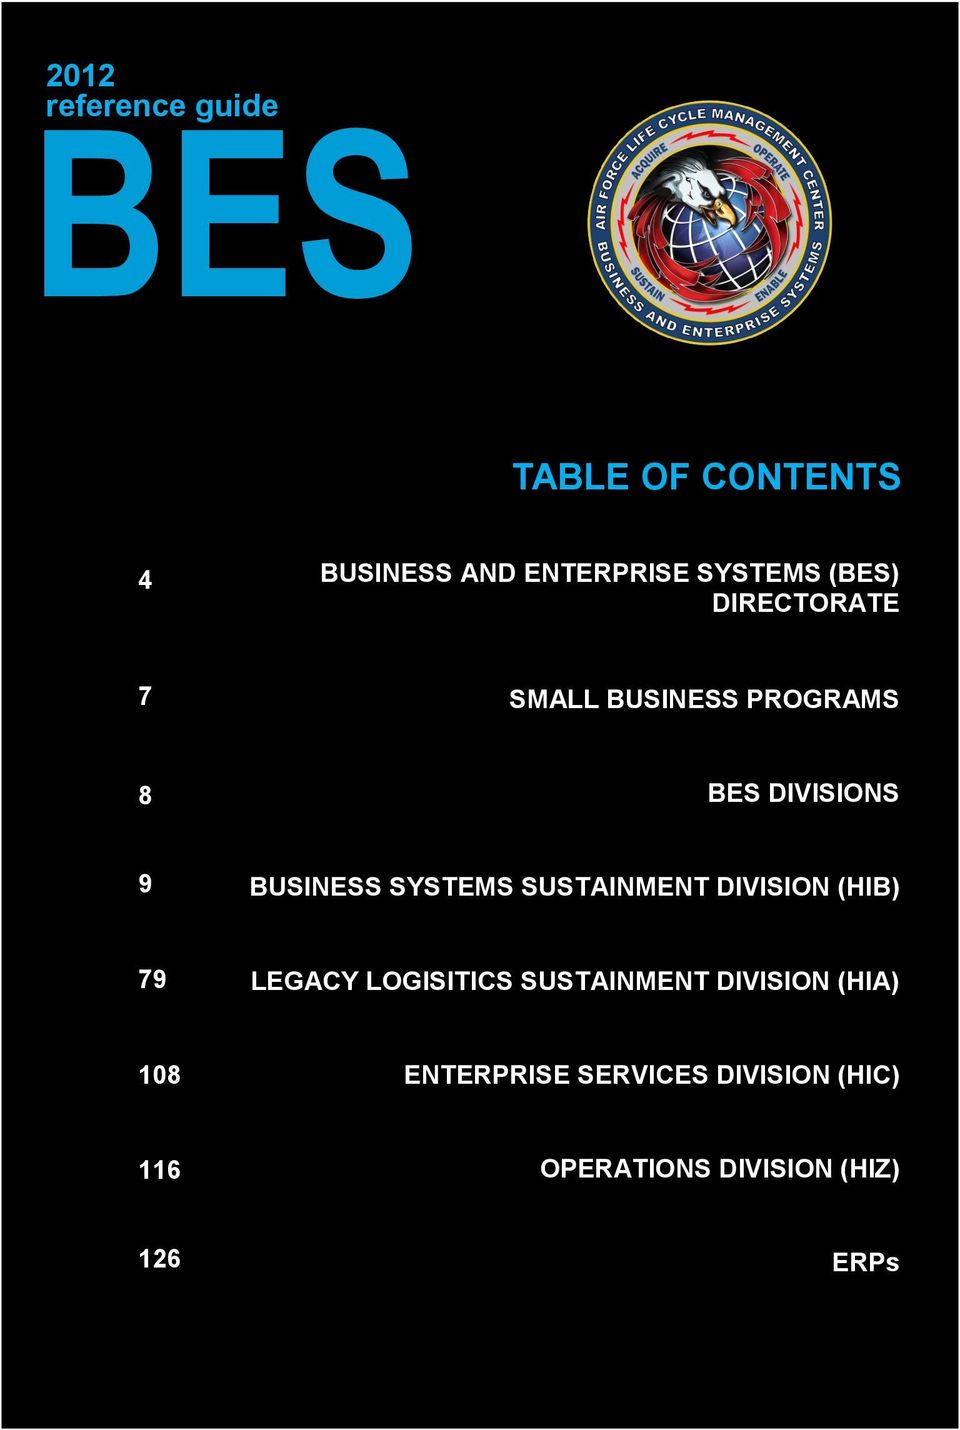 SYSTEMS SUSTAINMENT DIVISION (HIB) 79 LEGACY LOGISITICS SUSTAINMENT DIVISION